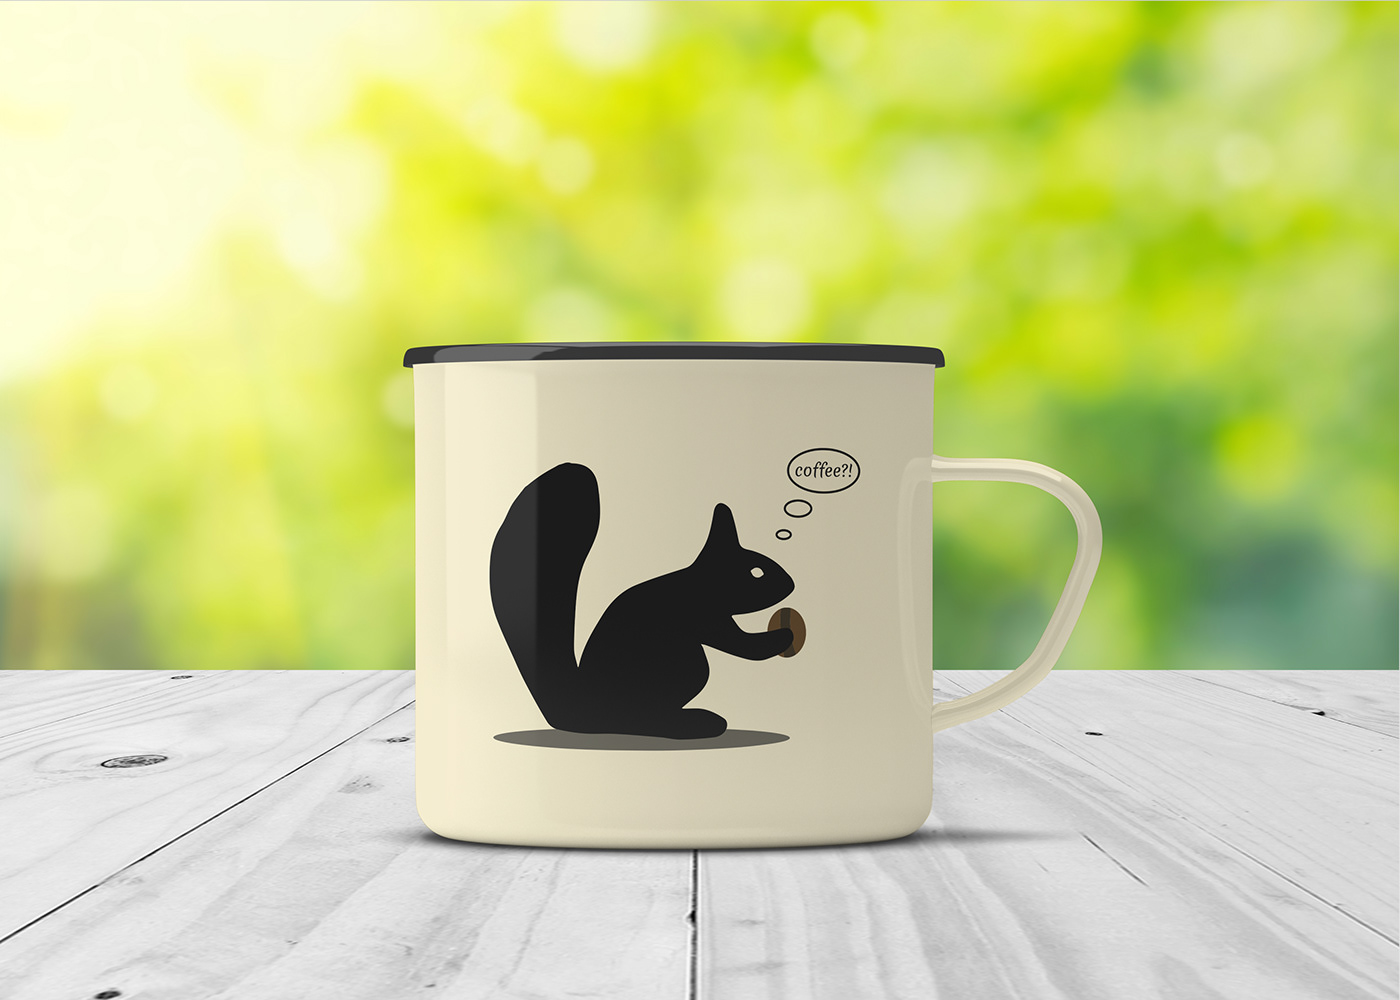 design cup of coffee squirrel Coffee cup chibby graphics design Mockup Drawing  drawinganimal